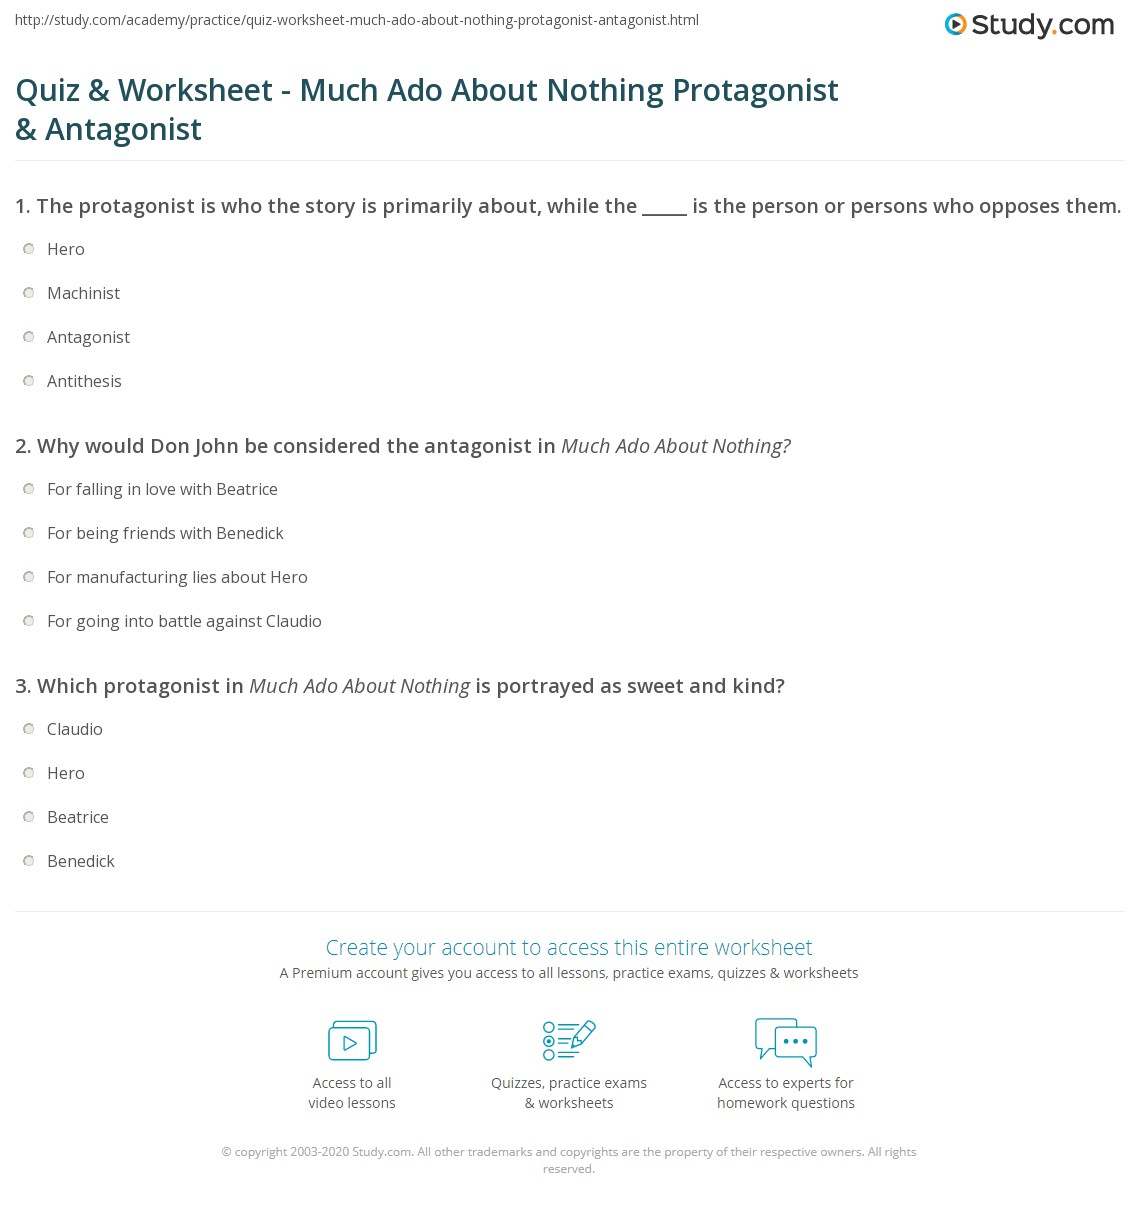 quiz worksheet much ado about nothing protagonist antagonist. Black Bedroom Furniture Sets. Home Design Ideas